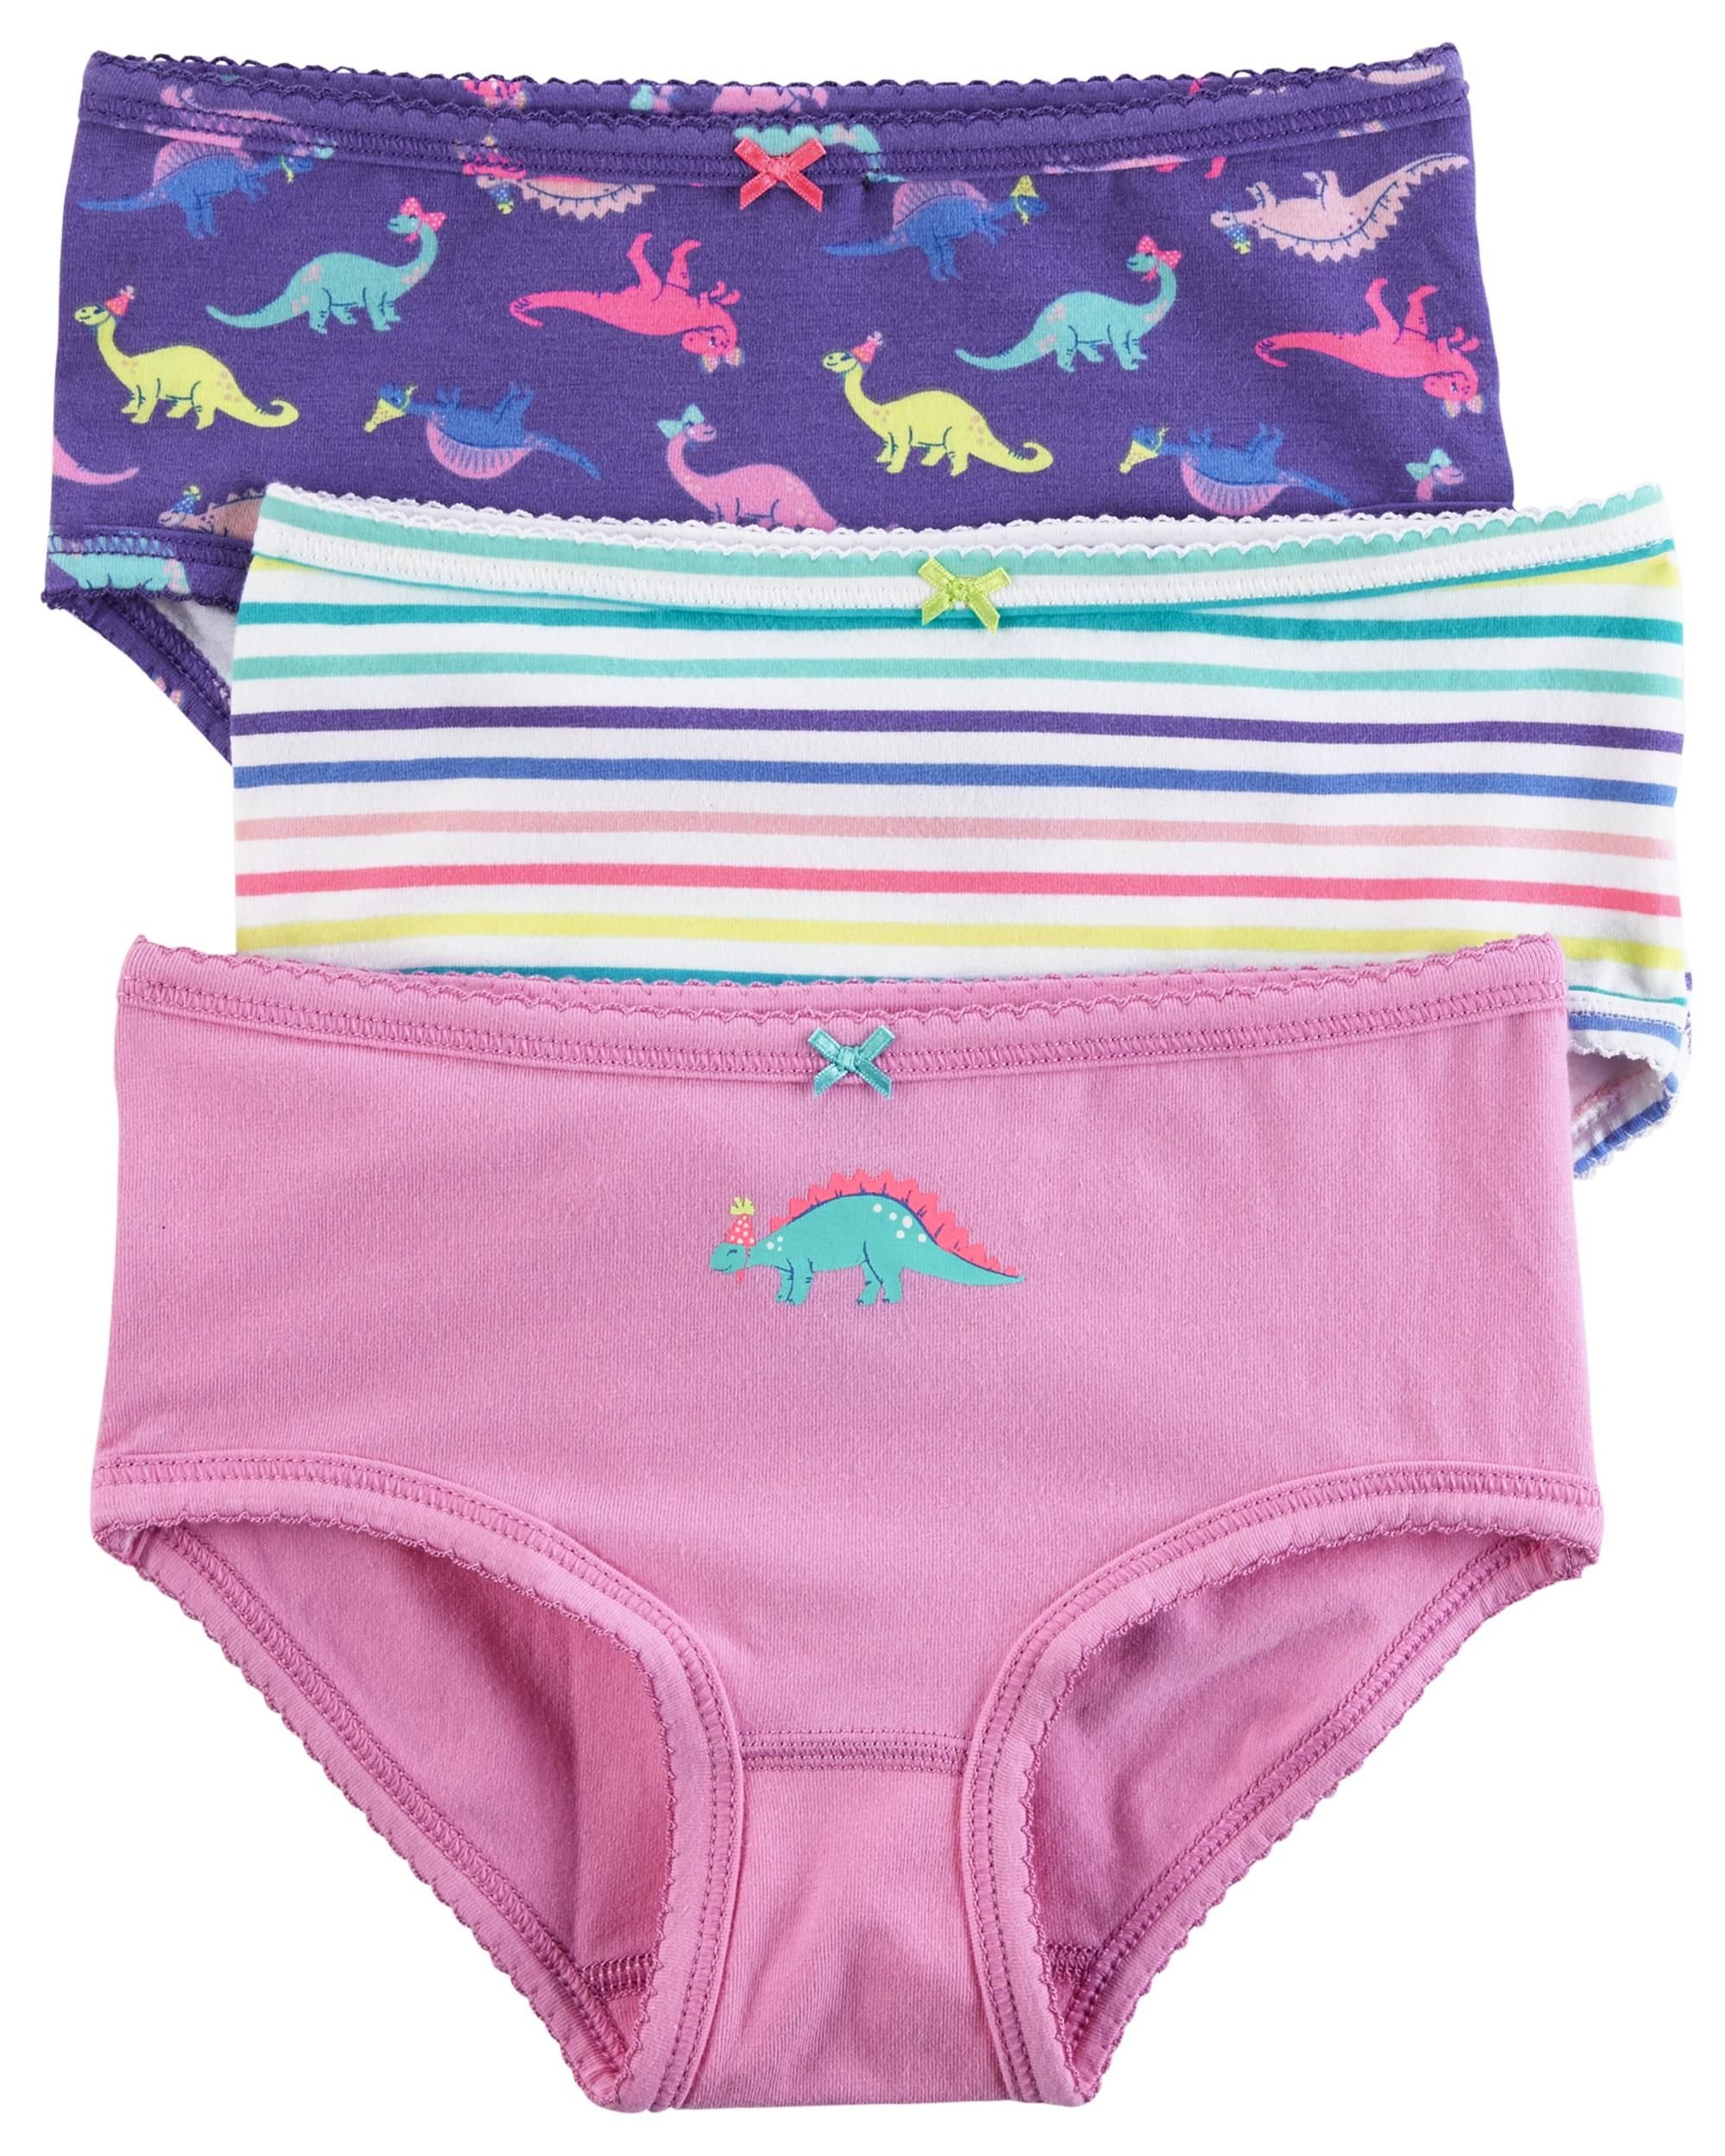 Carter's Little Girl's 3-Pack Stretch Cotton Panties (2-3T, Dinosaurs Print (436344110-11-2017)/Print/Stripes)